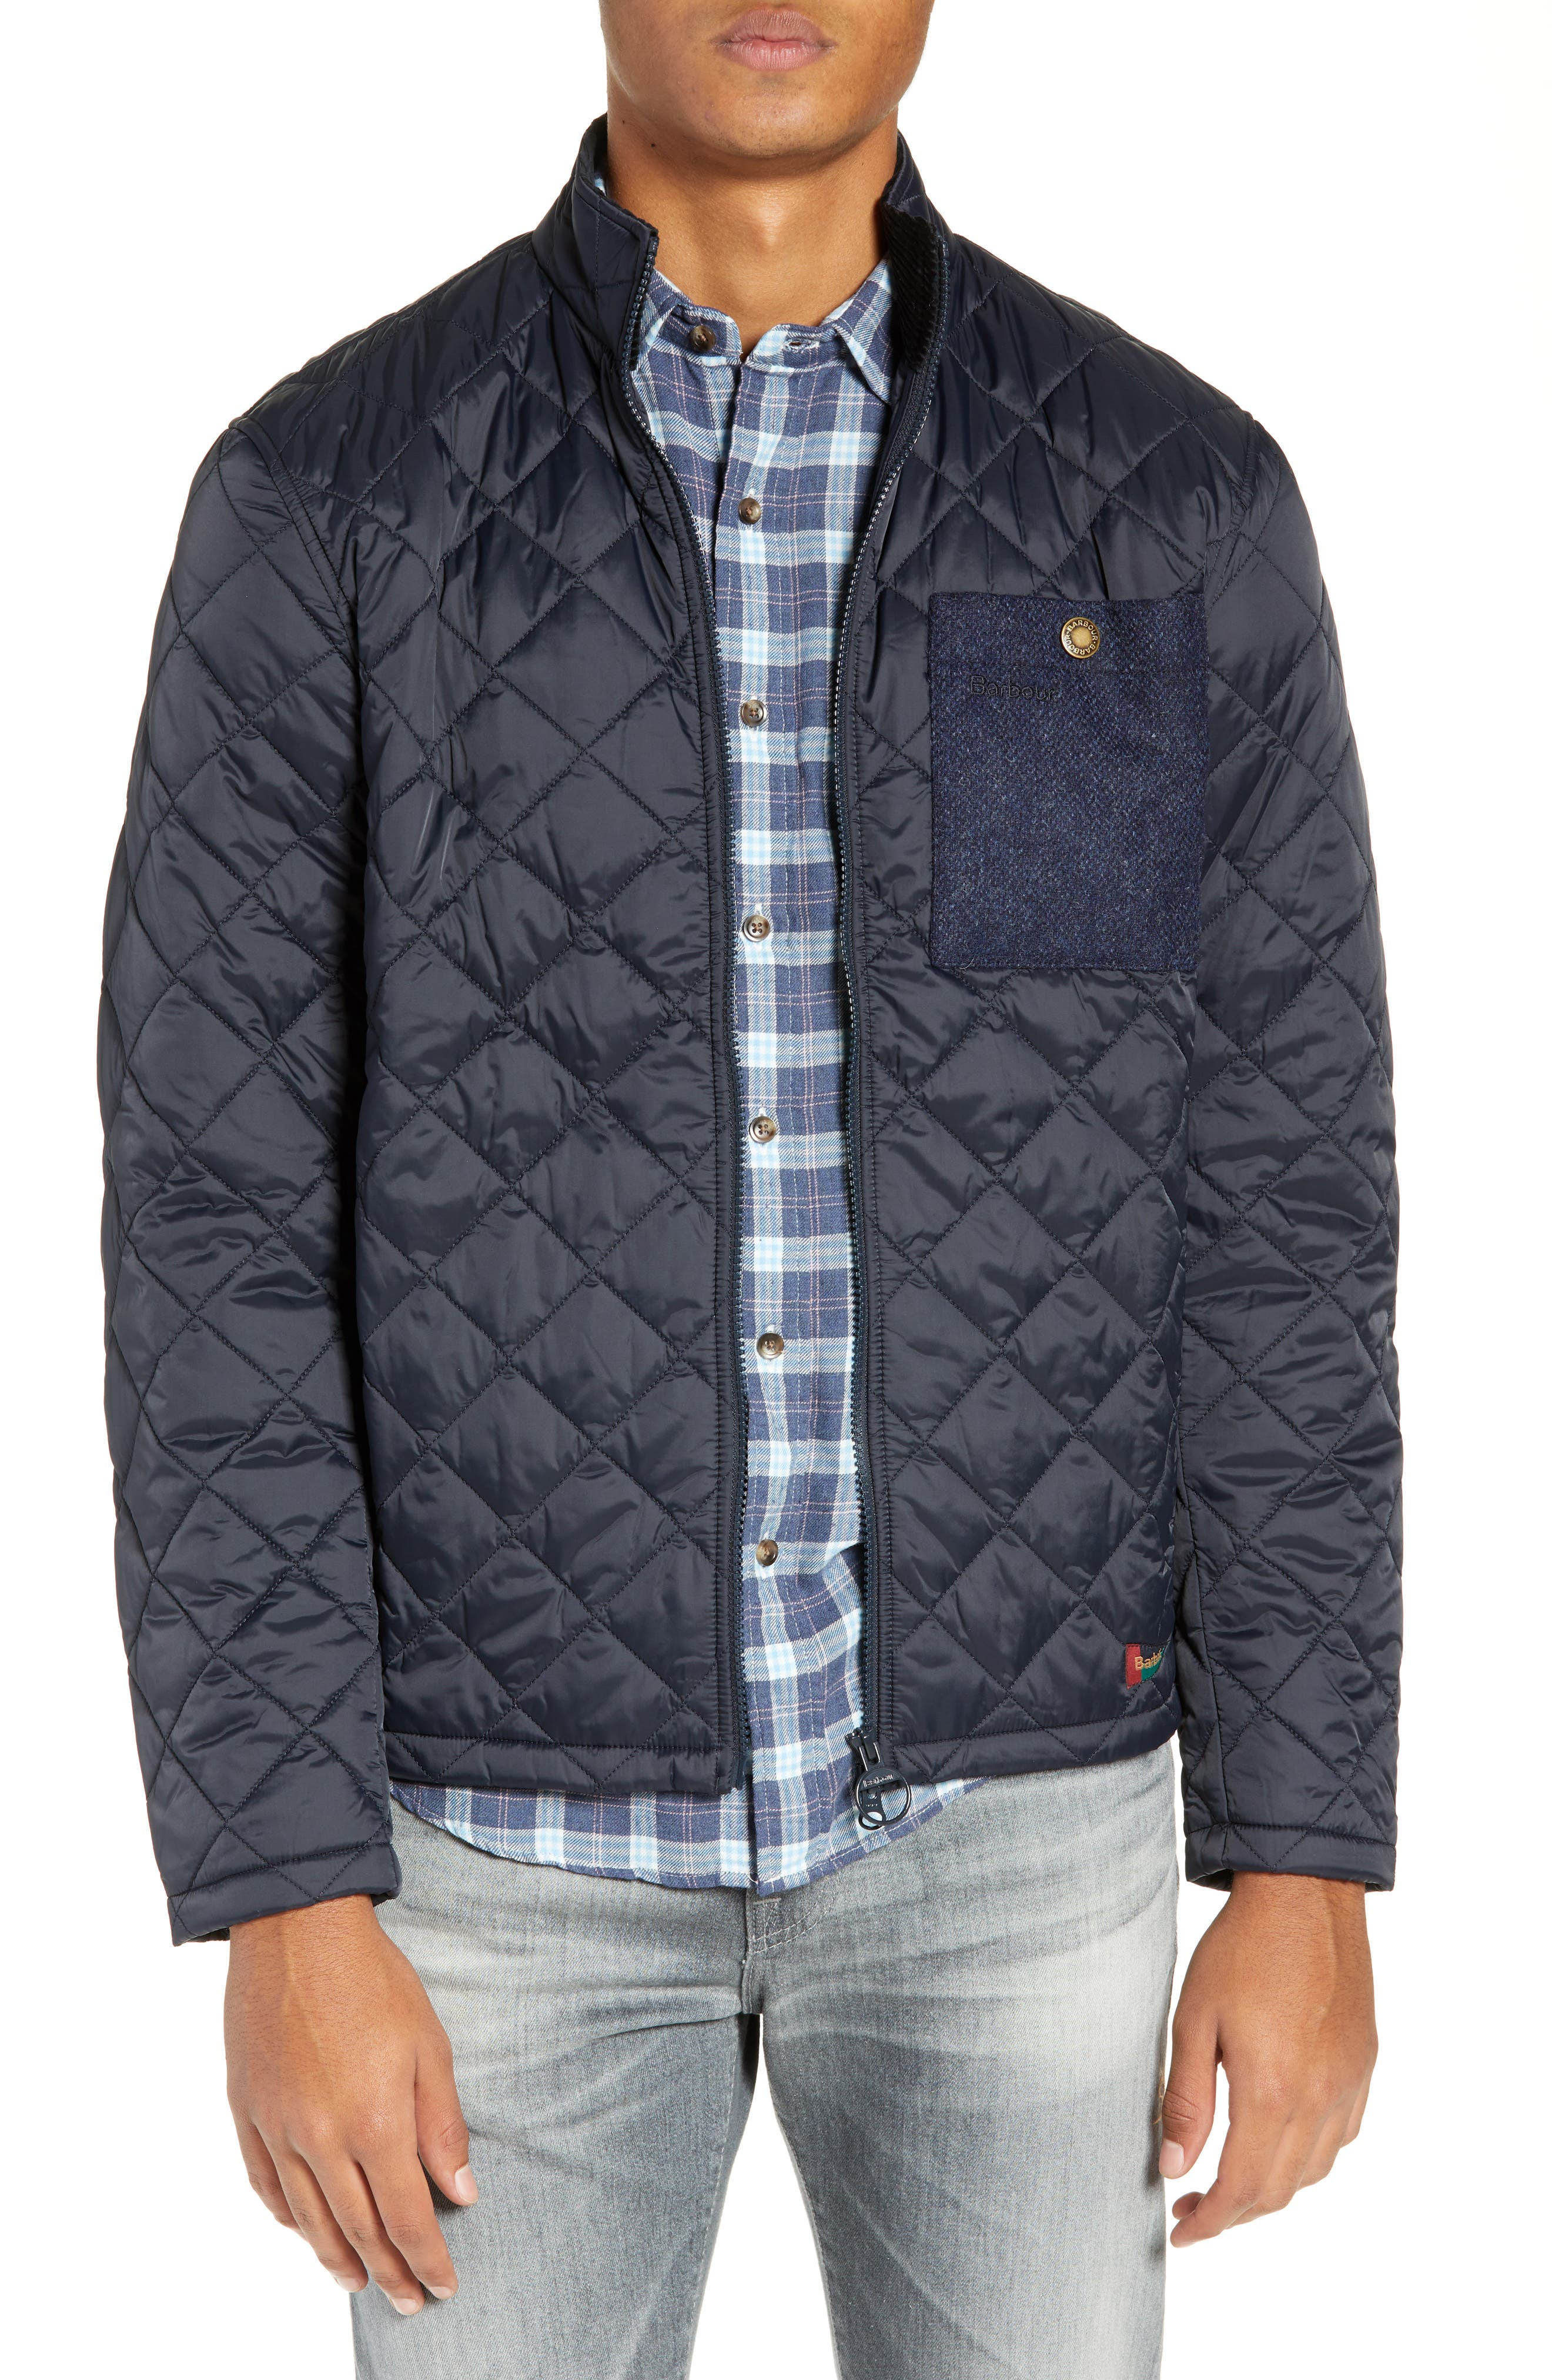 BARBOUR, Barbout Abaft Quilted Jacket, Main thumbnail 1, color, NAVY